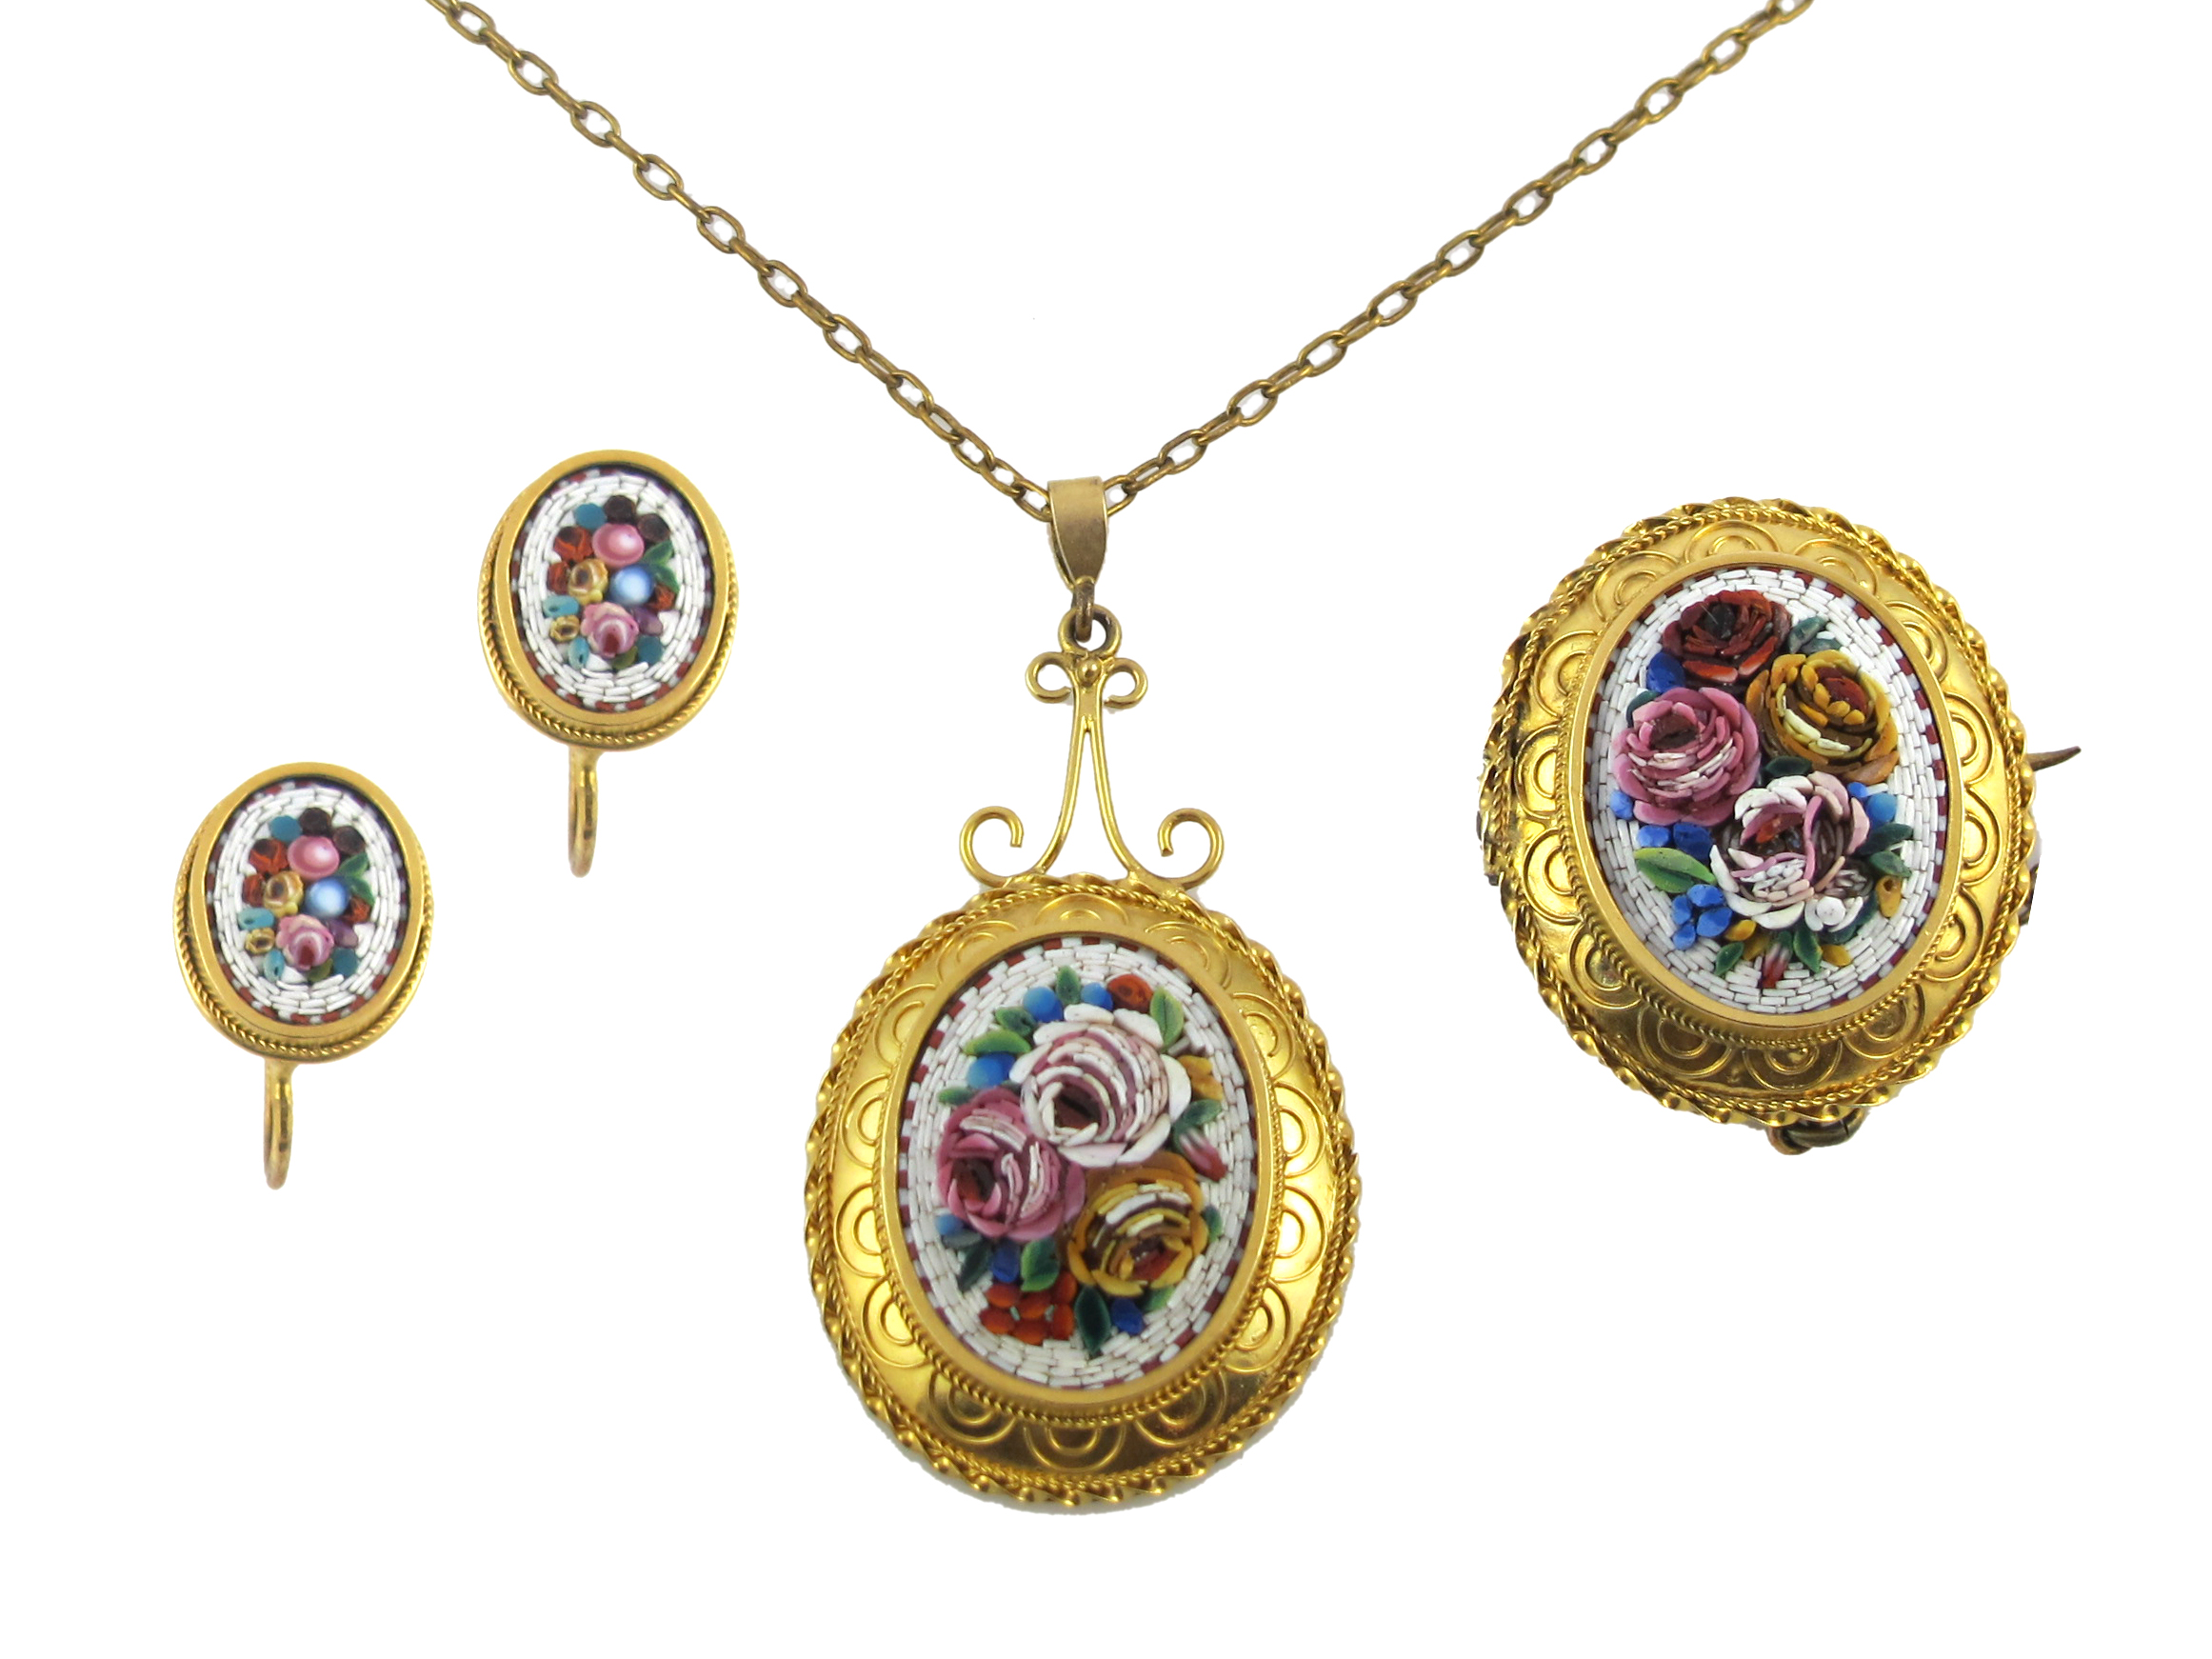 Click here to learn more about our vintage & antique jewellery restoration services.